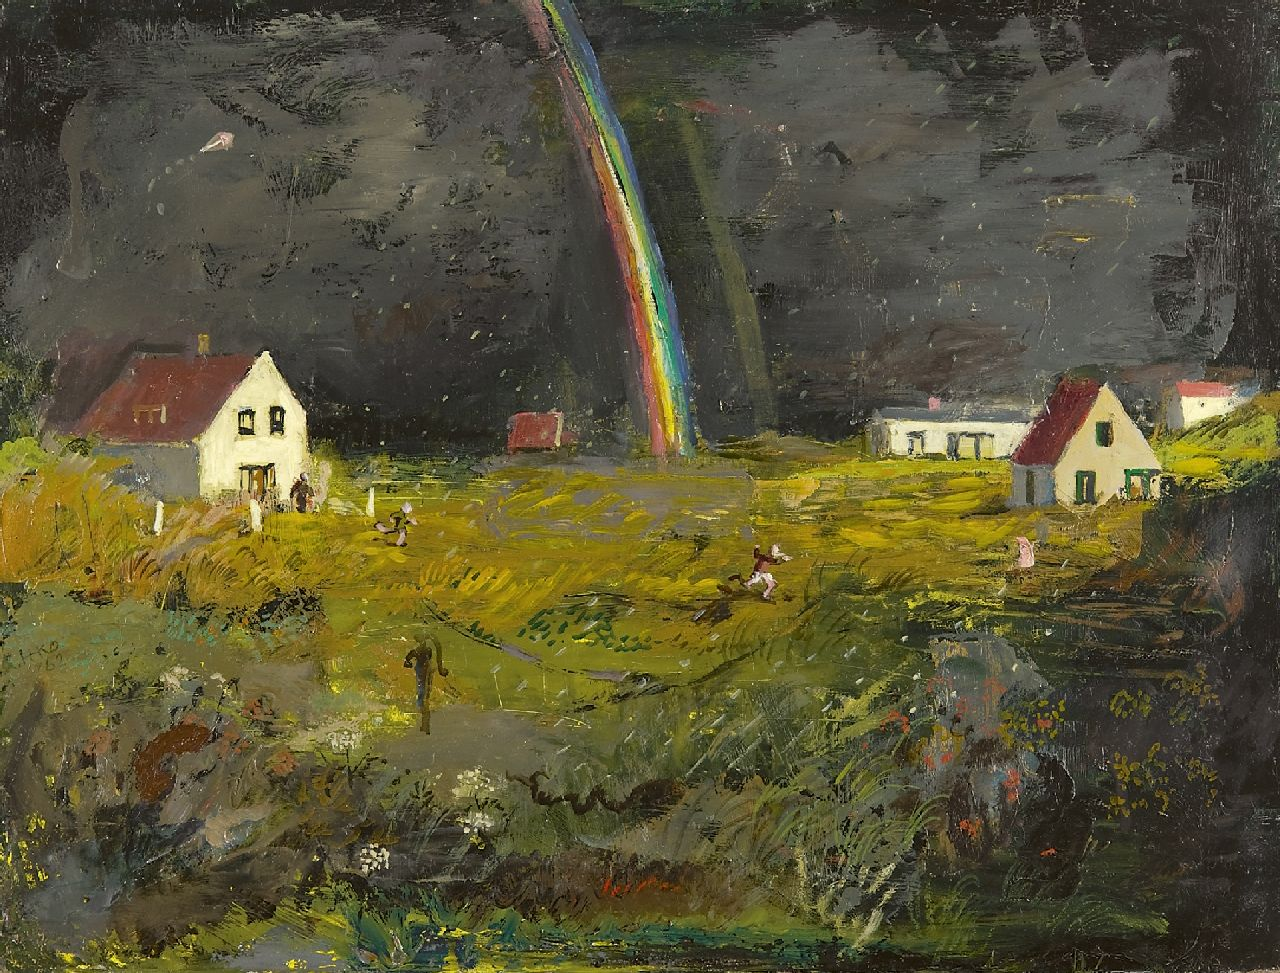 Kamerlingh Onnes H.H.  | 'Harm' Henrick Kamerlingh Onnes | Paintings offered for sale | A rainbow on the island Terschelling, oil on board 30.5 x 40.2 cm, signed l.m. with monogram and dated '62